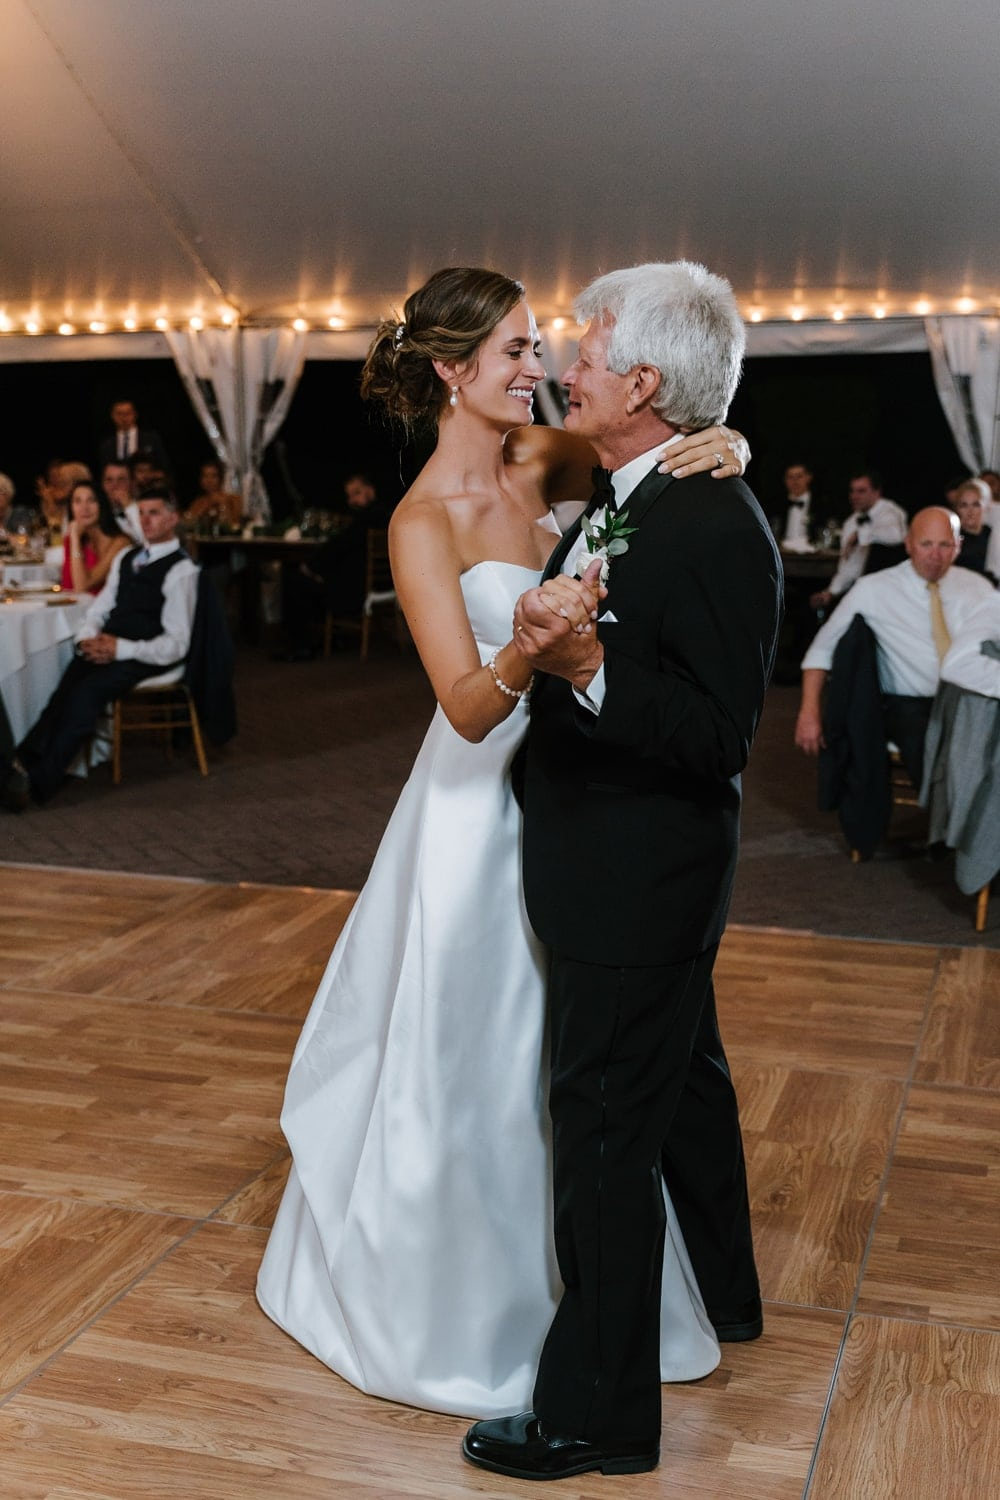 A bride dancing with her father during a wedding reception